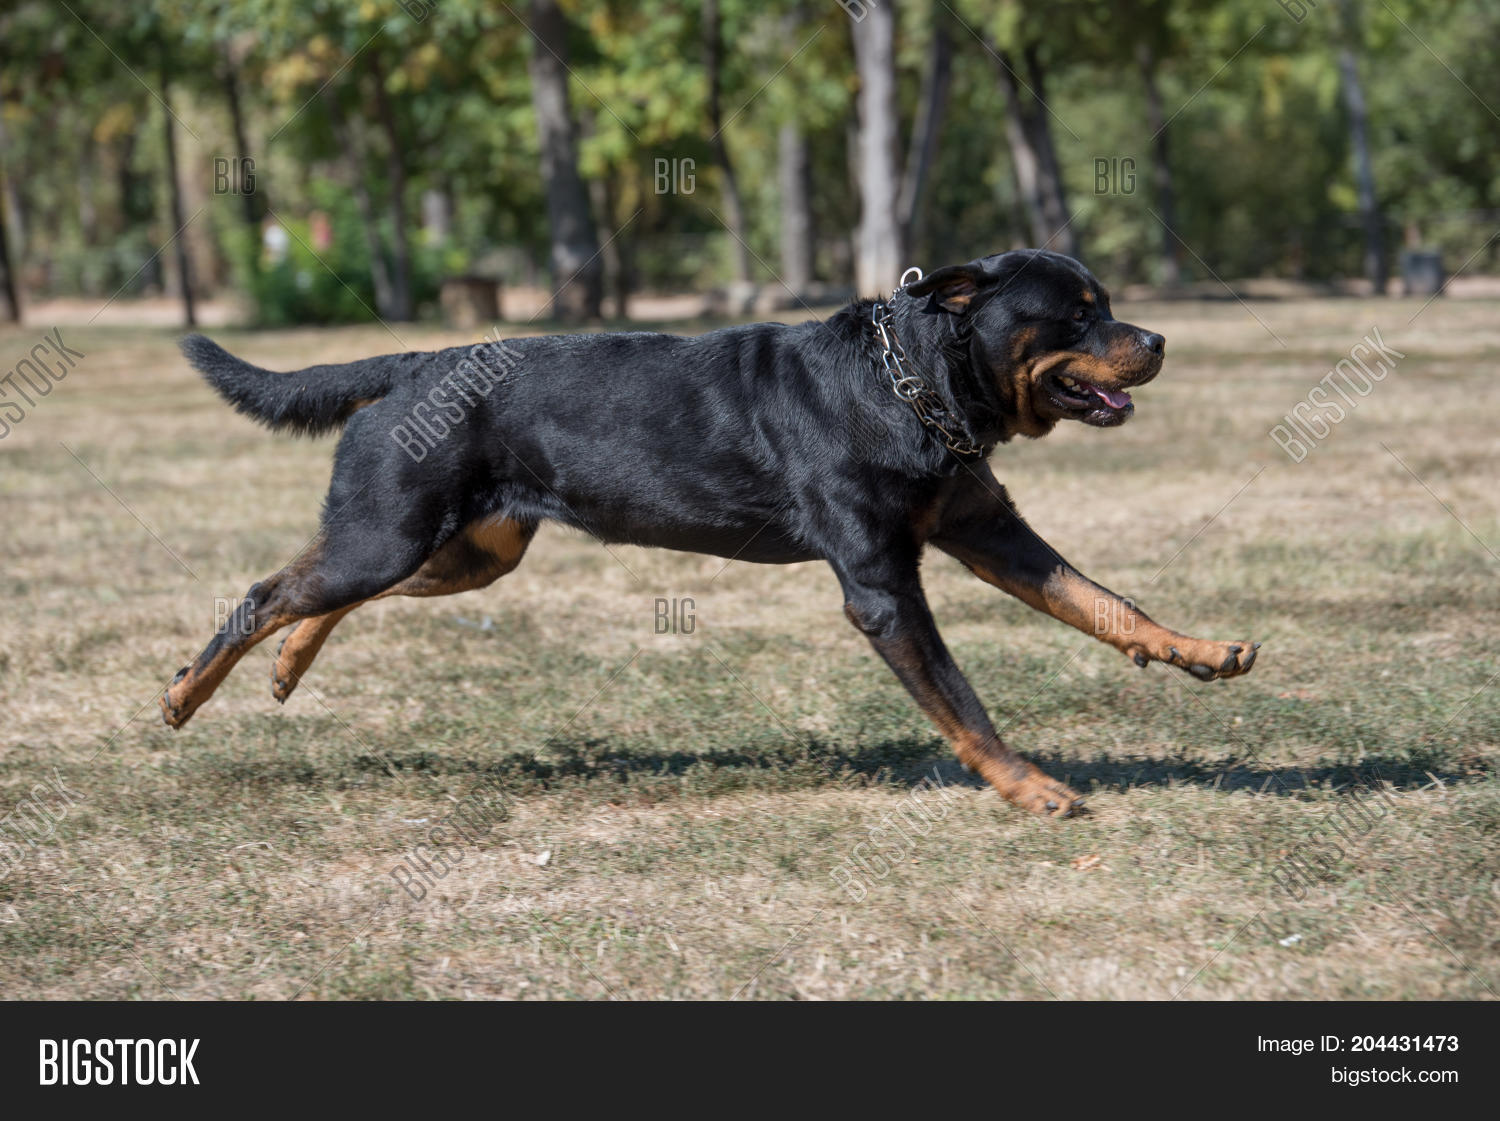 Rottweiler Dog Running Image Photo Free Trial Bigstock